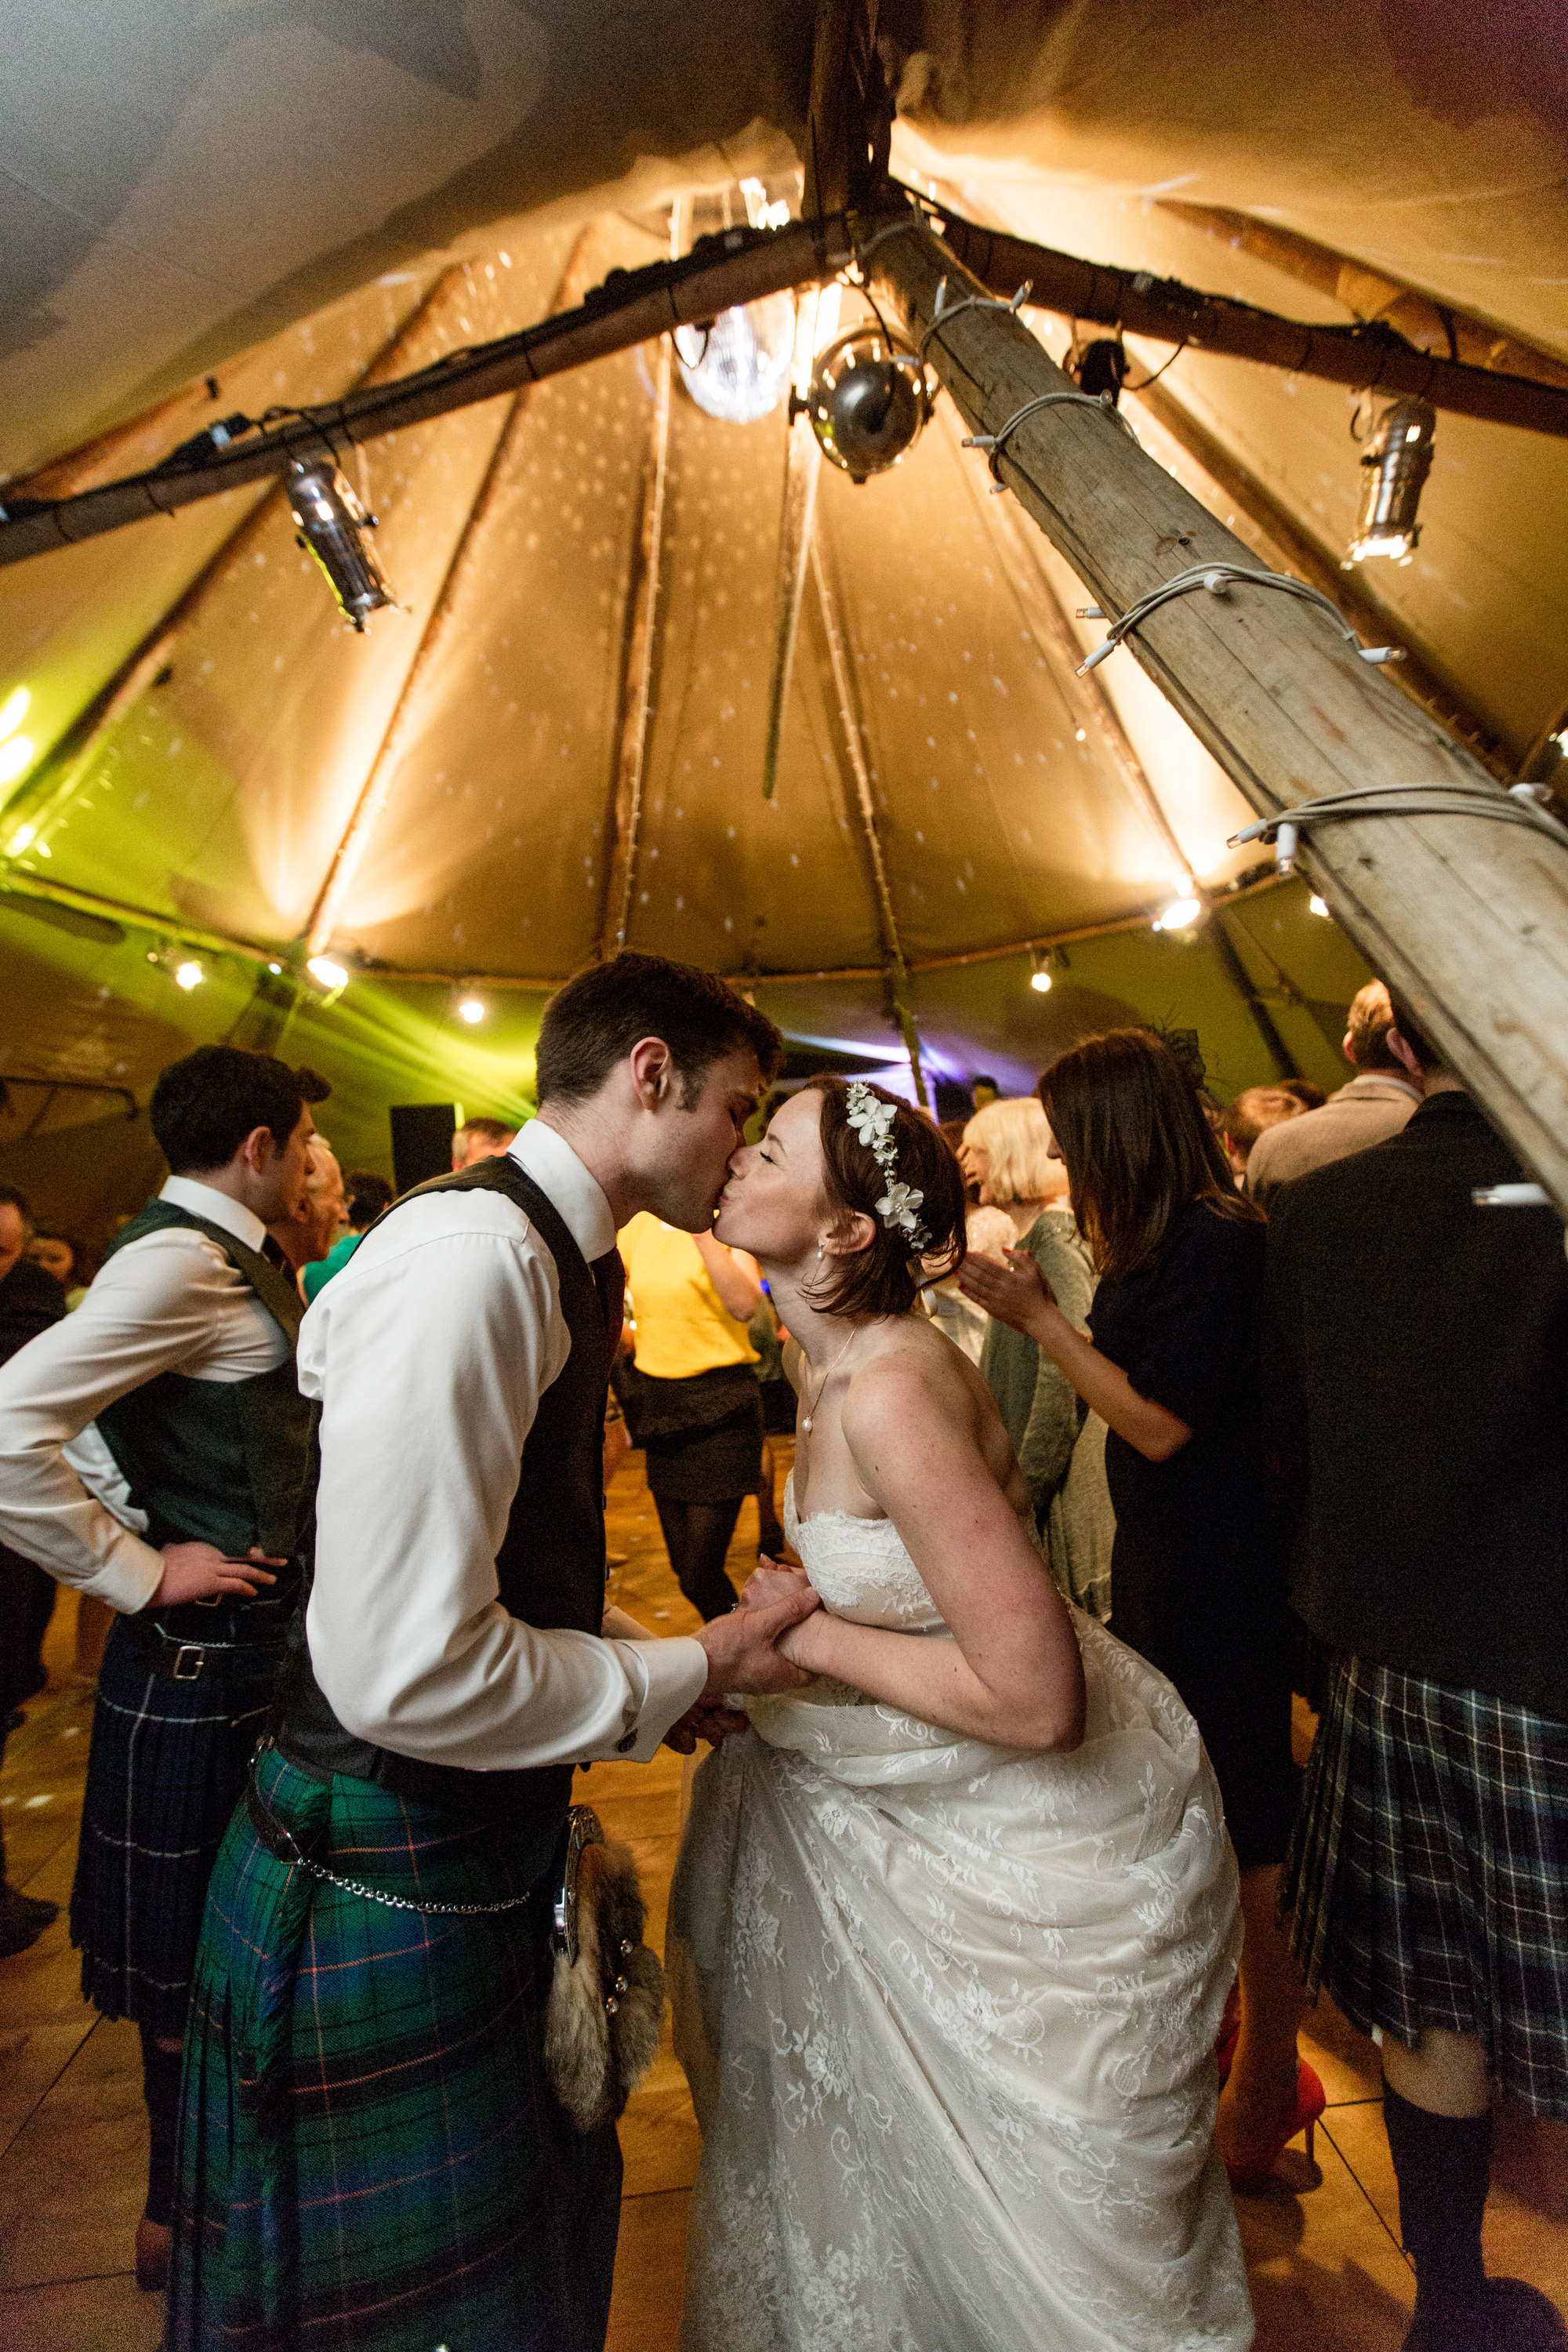 wedding dance at rustic wedding, Scotland